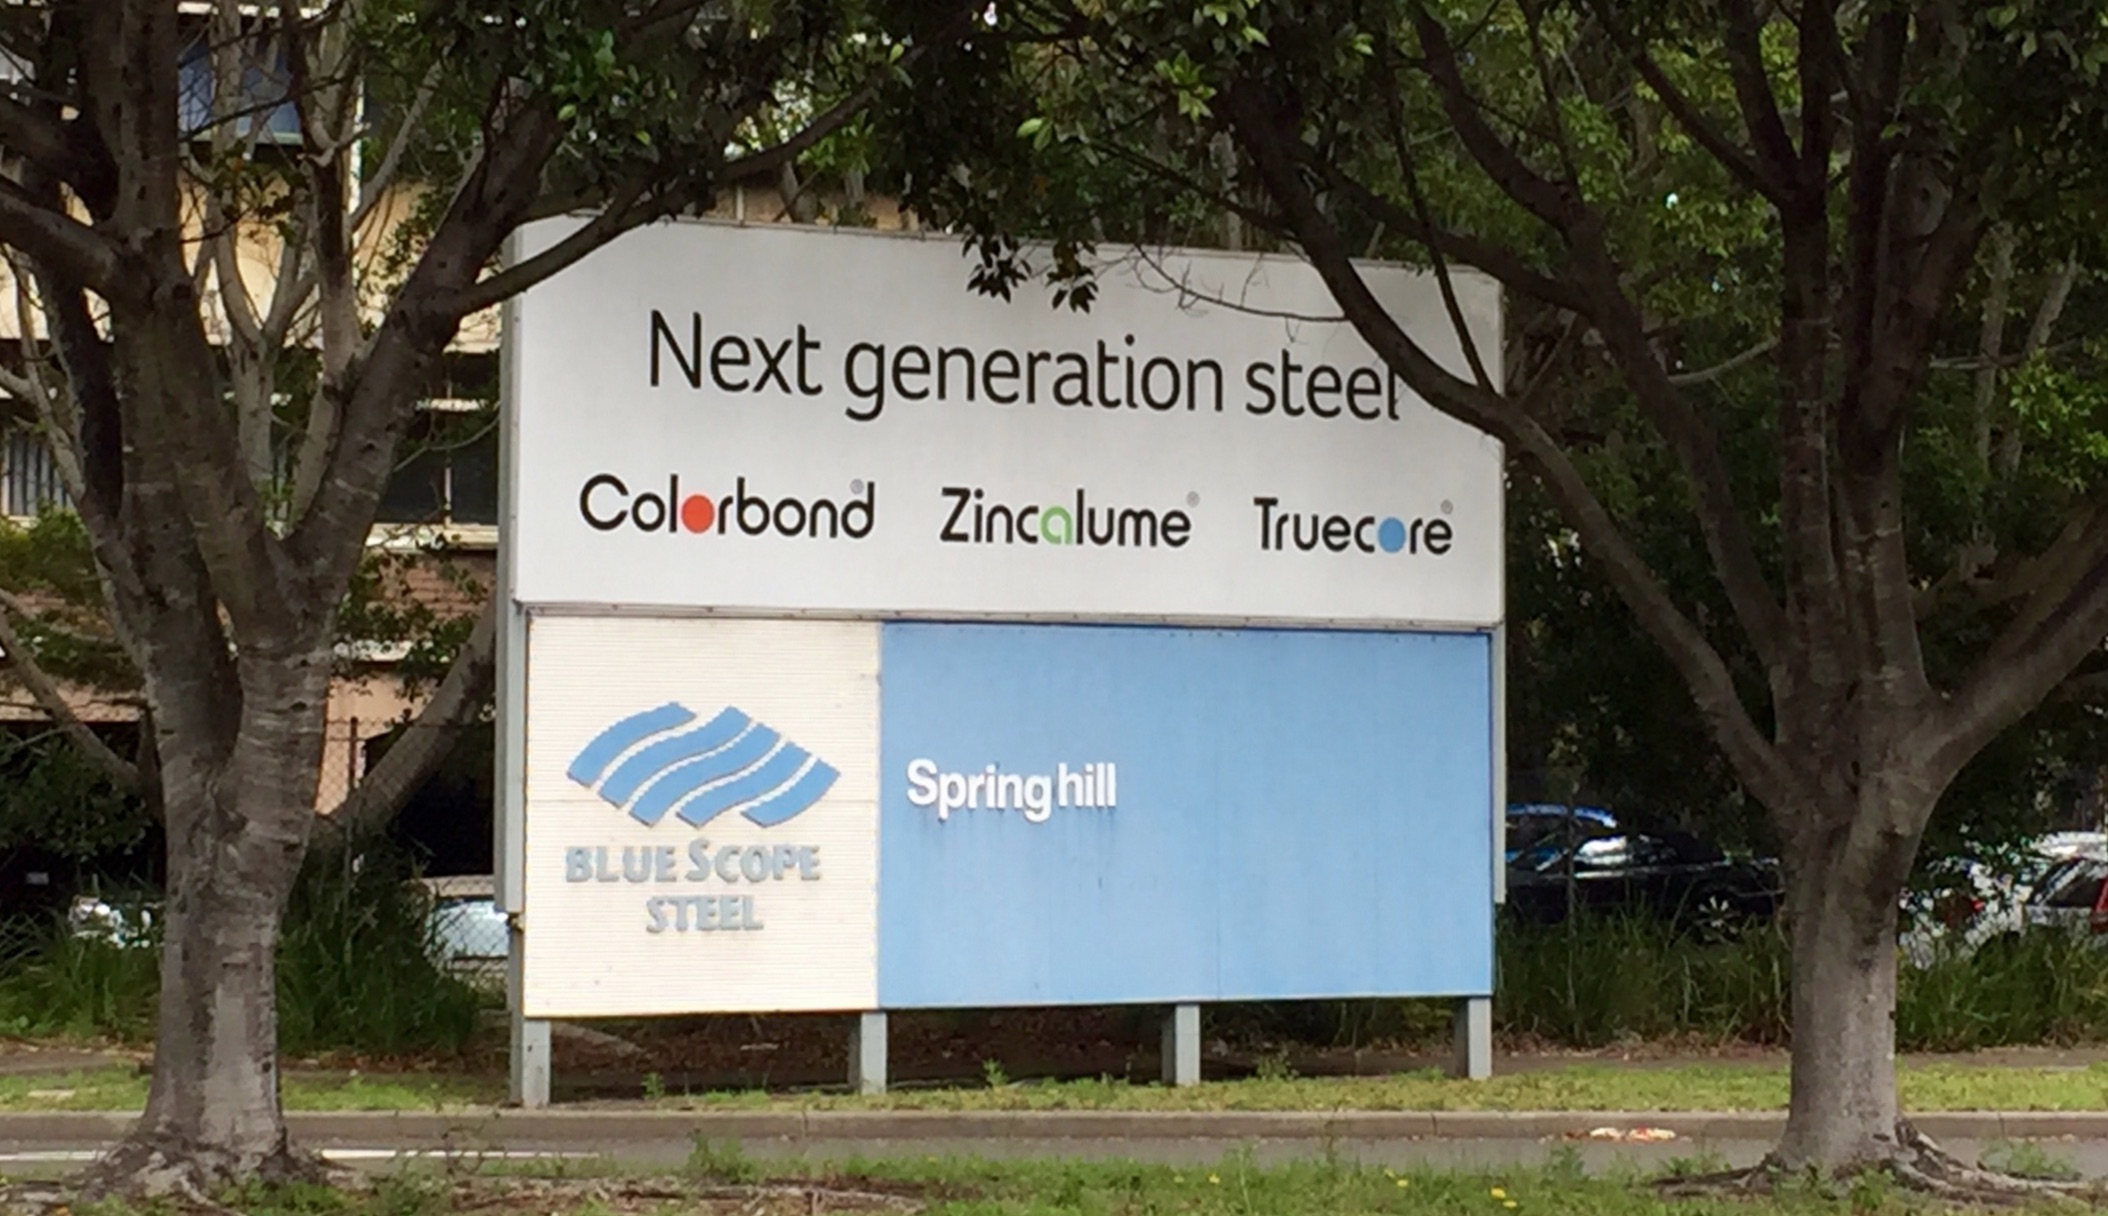 Veteran steelworker laments constant threat of Port Kembla closure